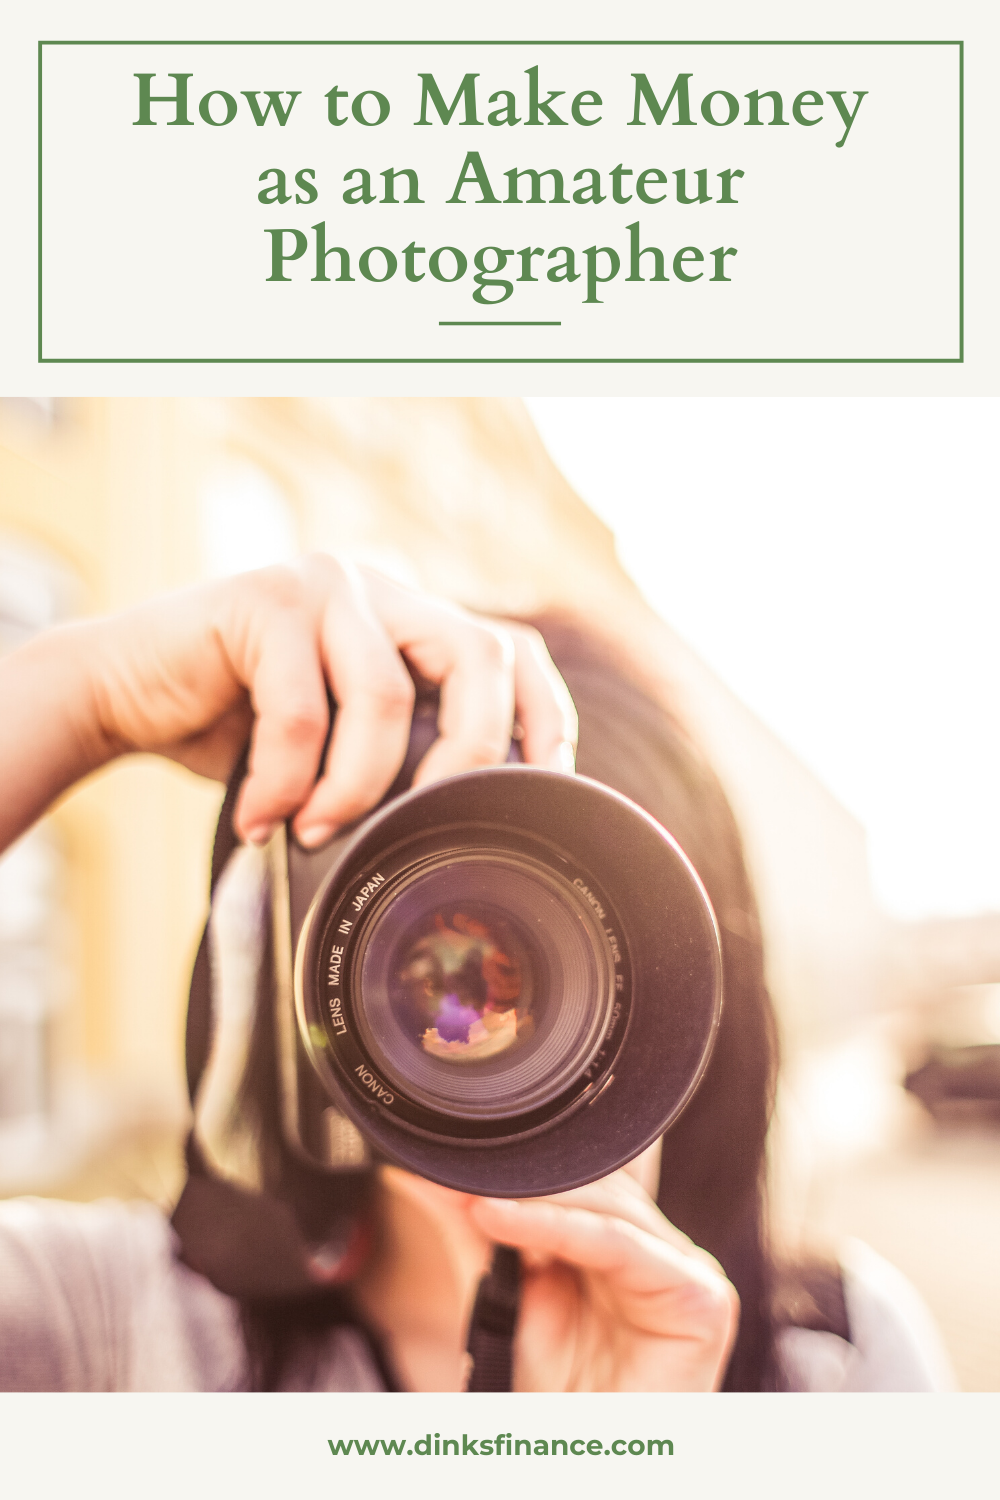 How to Make Money as an Amateur Photographer